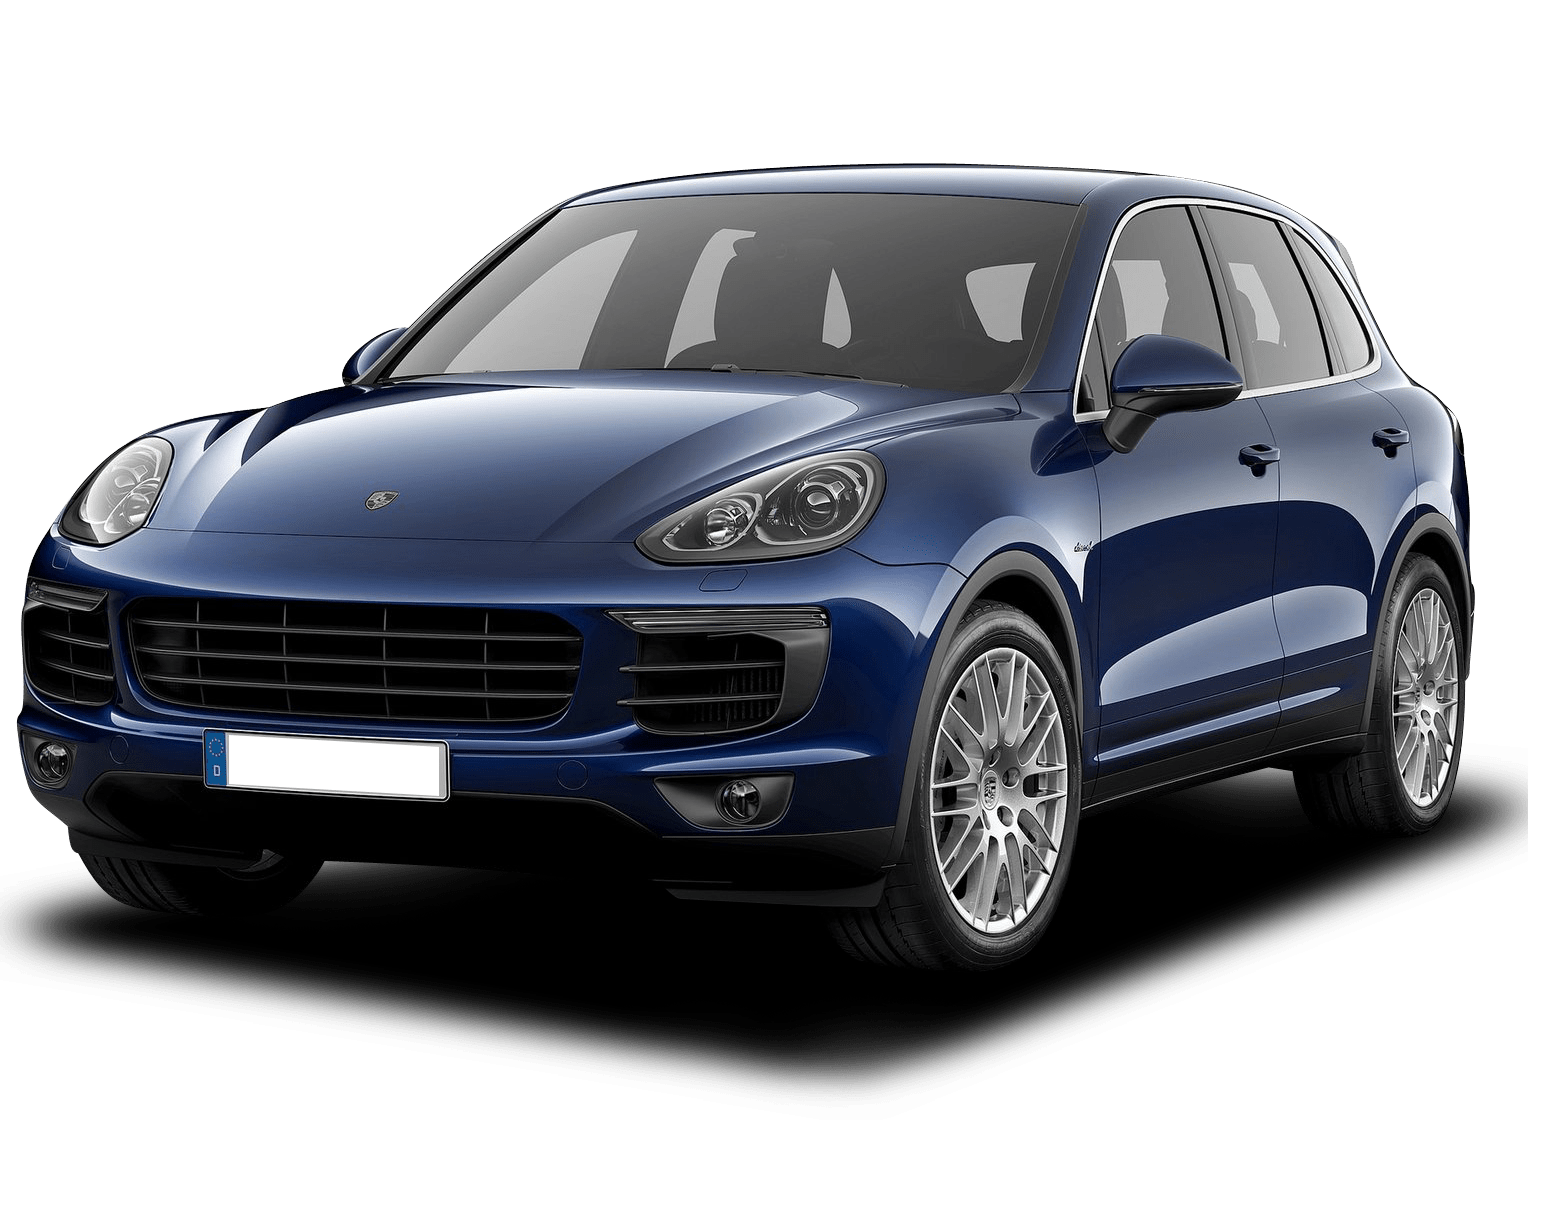 Porsche Cayenne Review, Price, For Sale, Colours, Interior